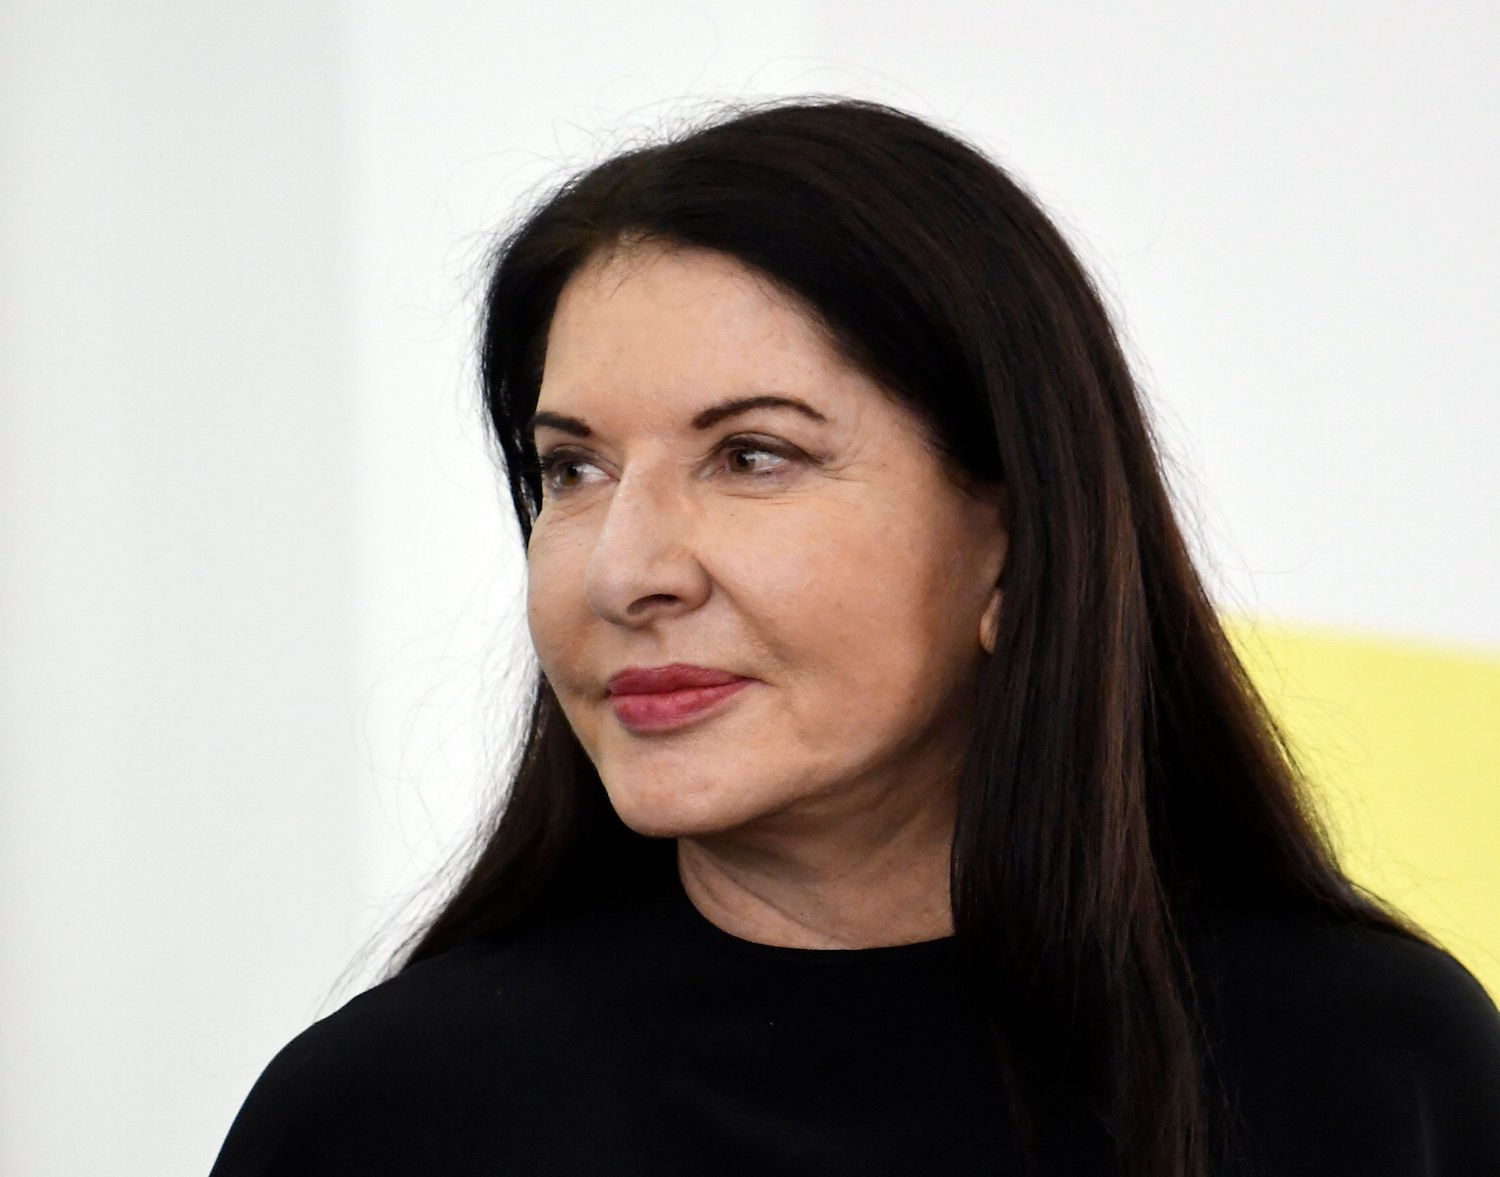 Marina Abramović's Nude Performance Piece 'Imponderabilia' Goes to London in 2020—Can Brits Take the Heat? -